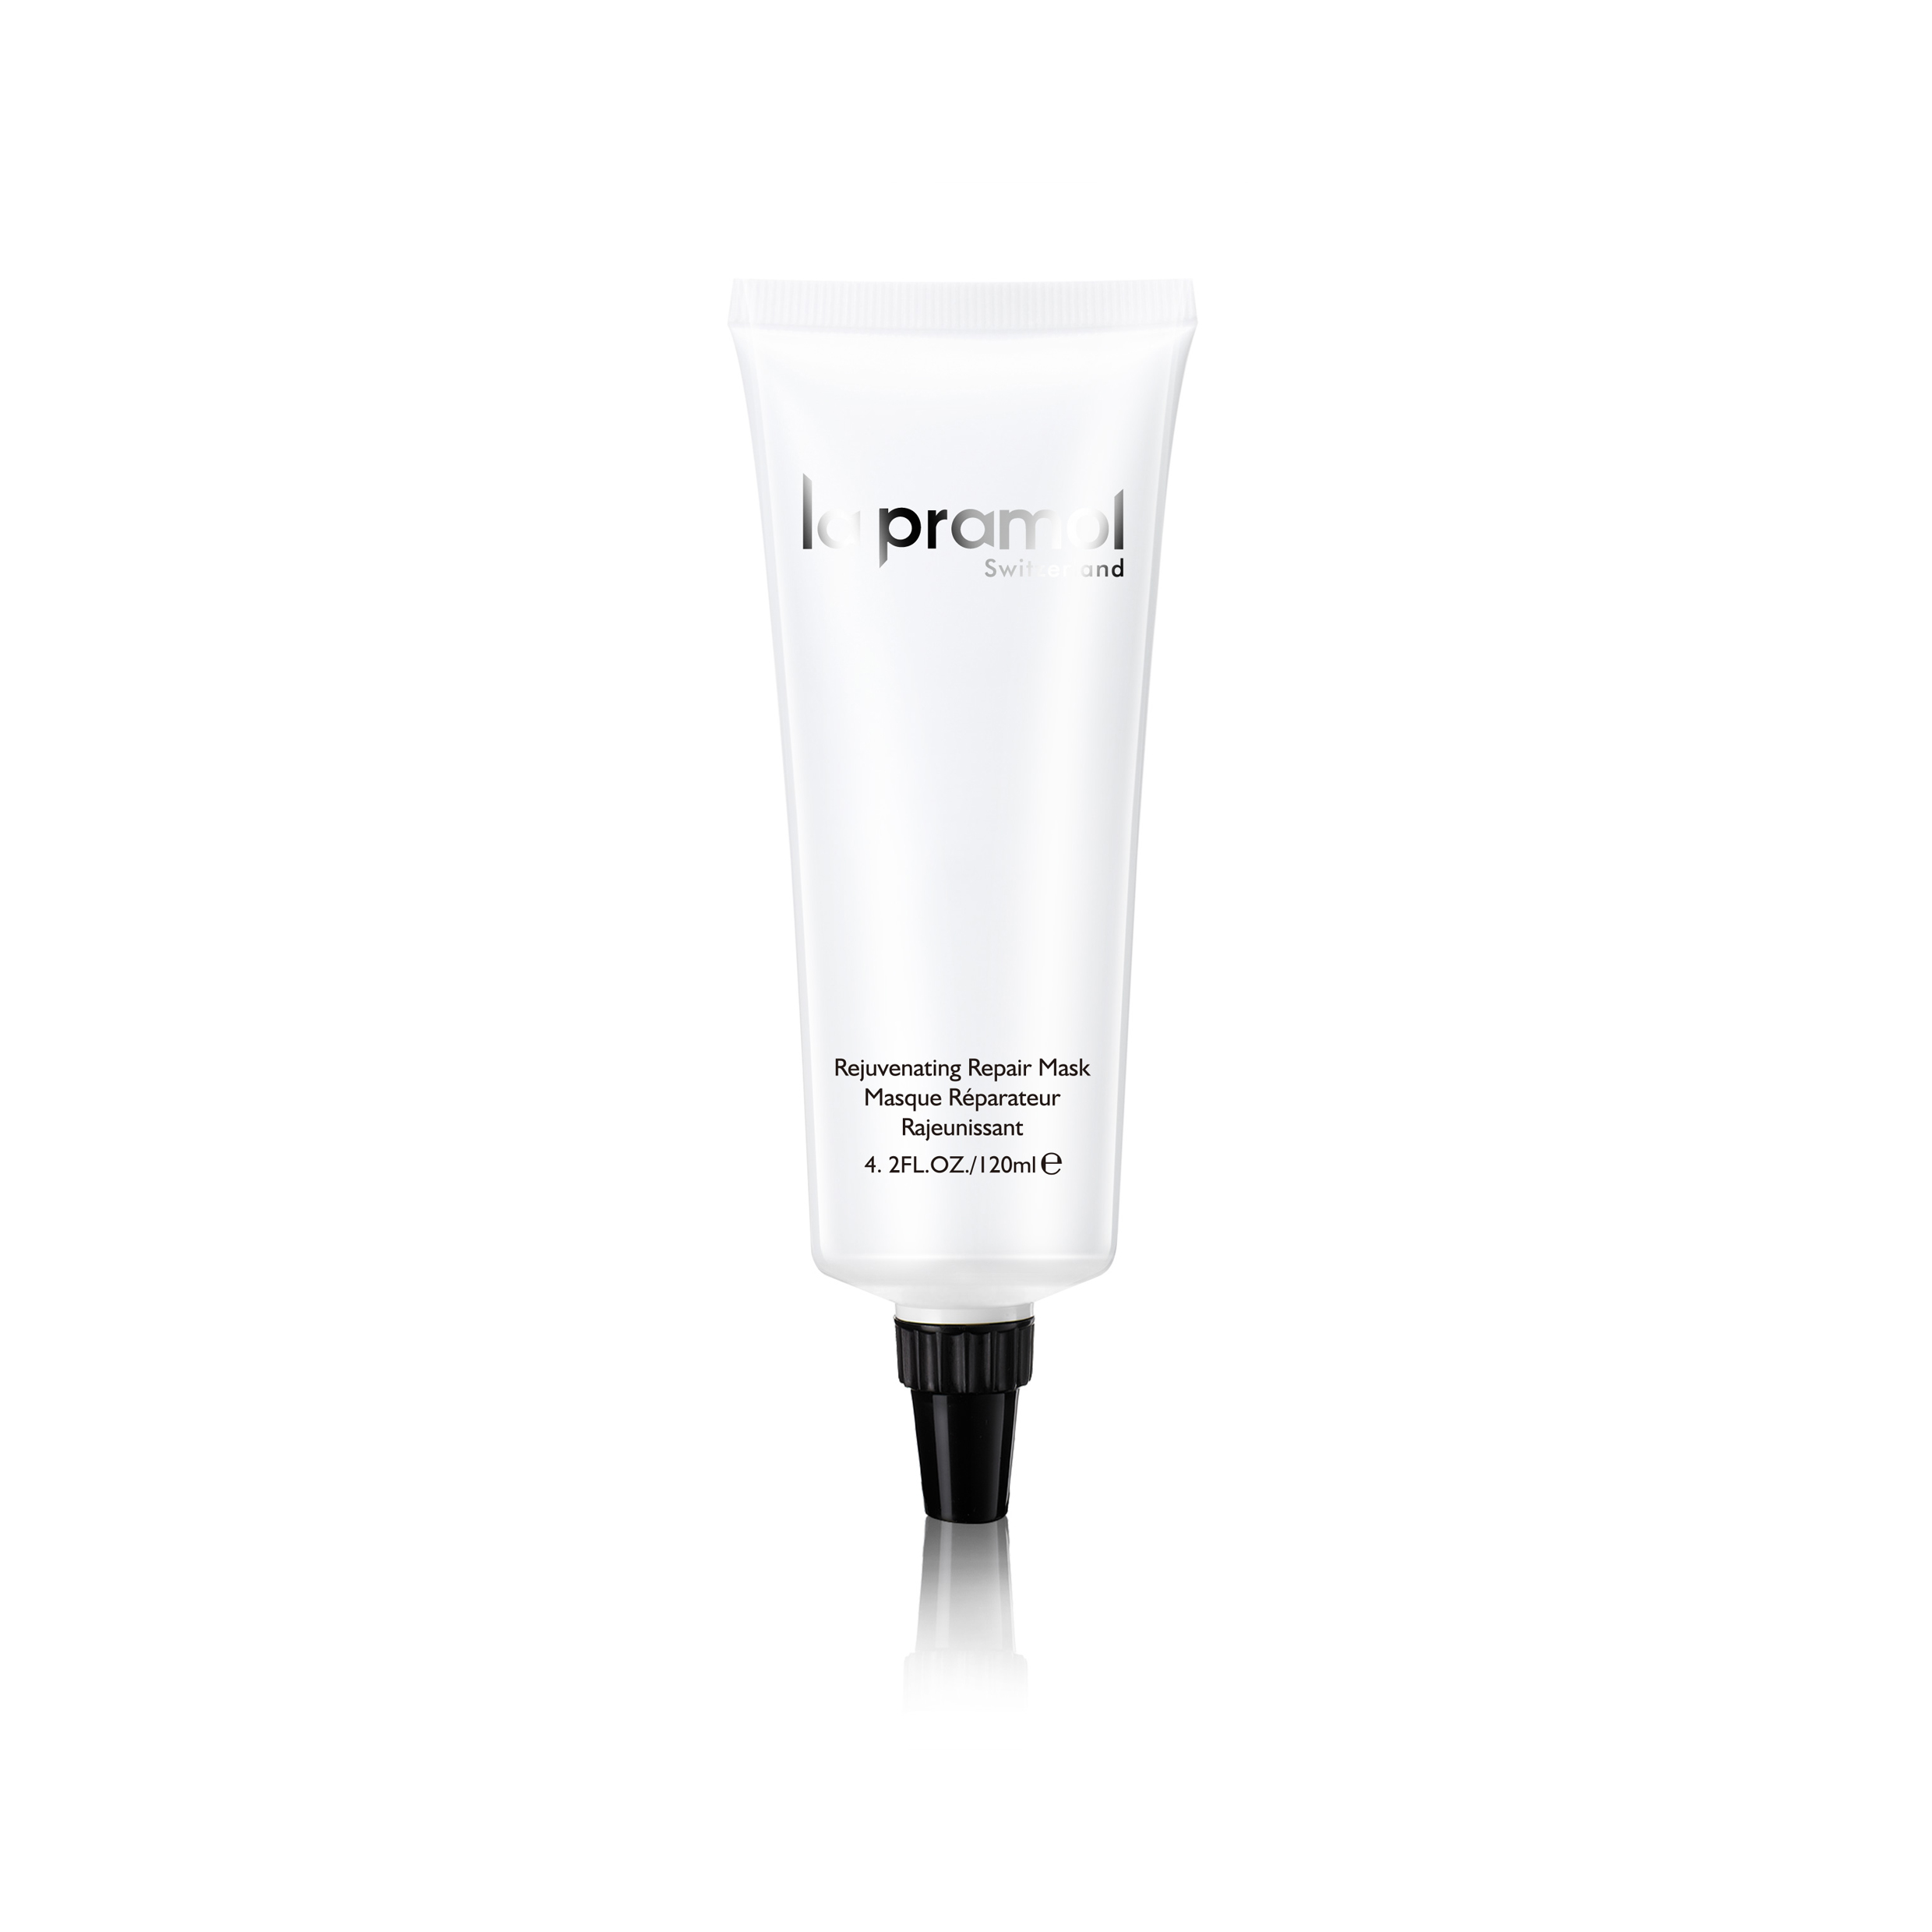 Rejuvenating Repair Mask